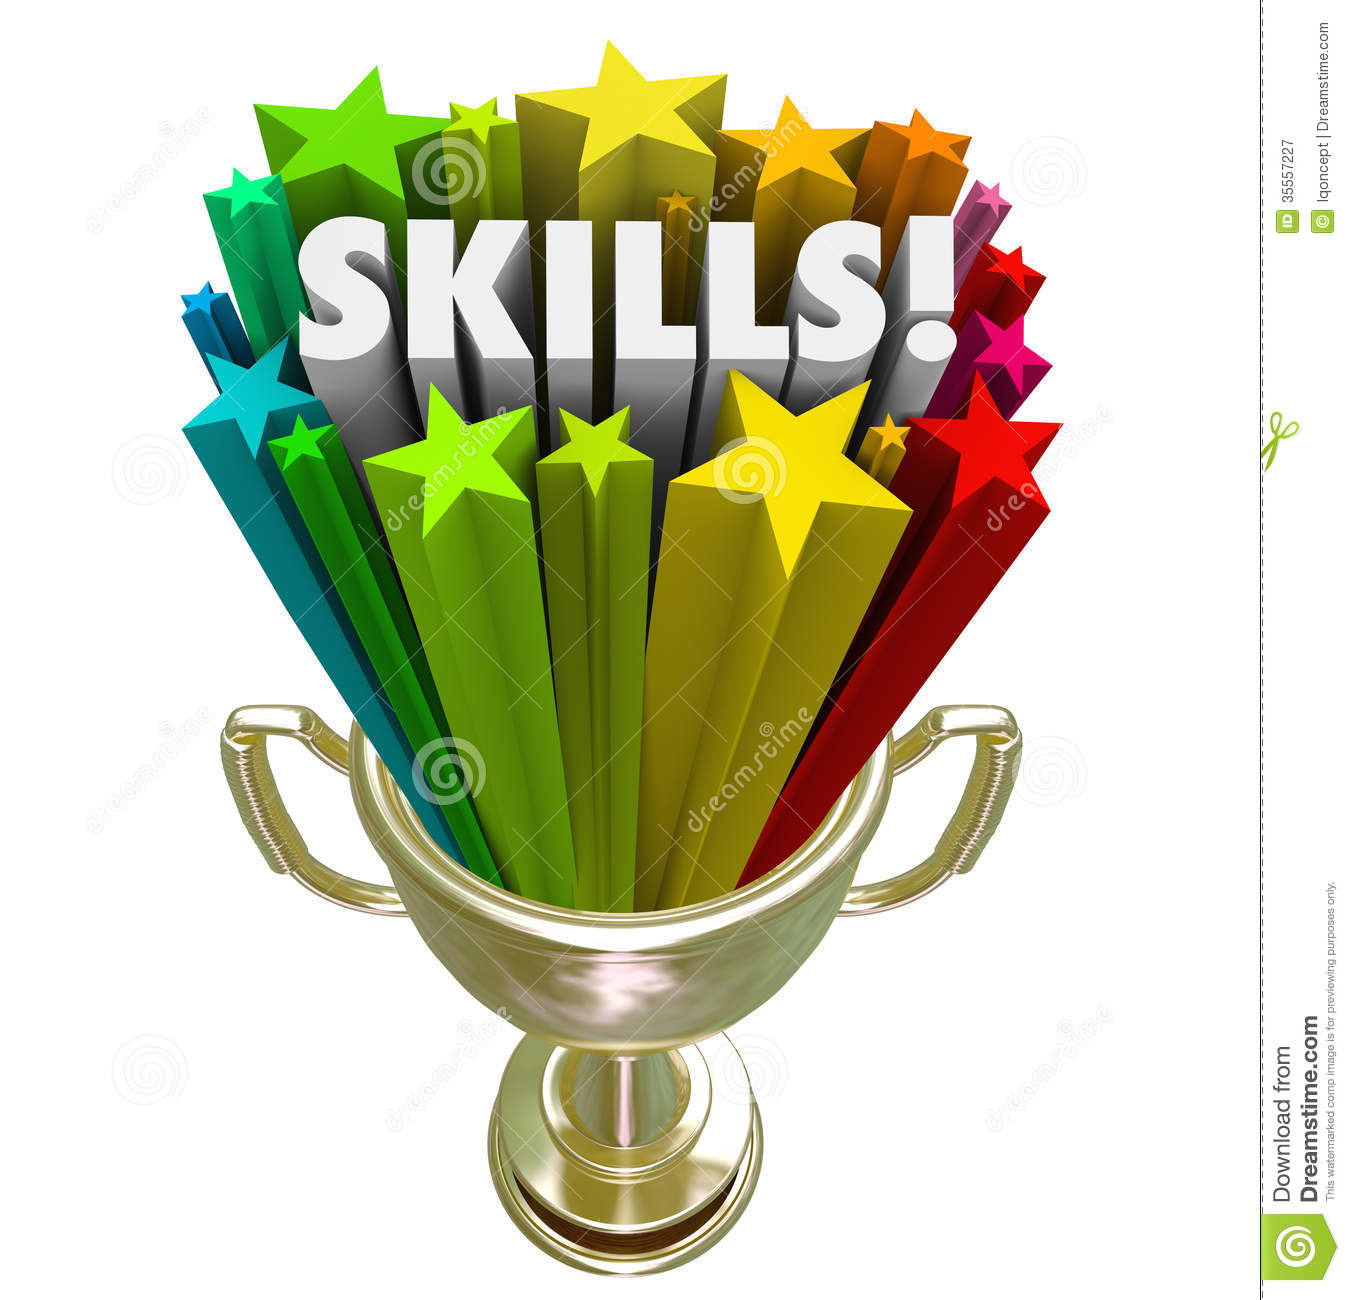 job skills clipart clipart kid best online collection of to use clipart contact us privacy